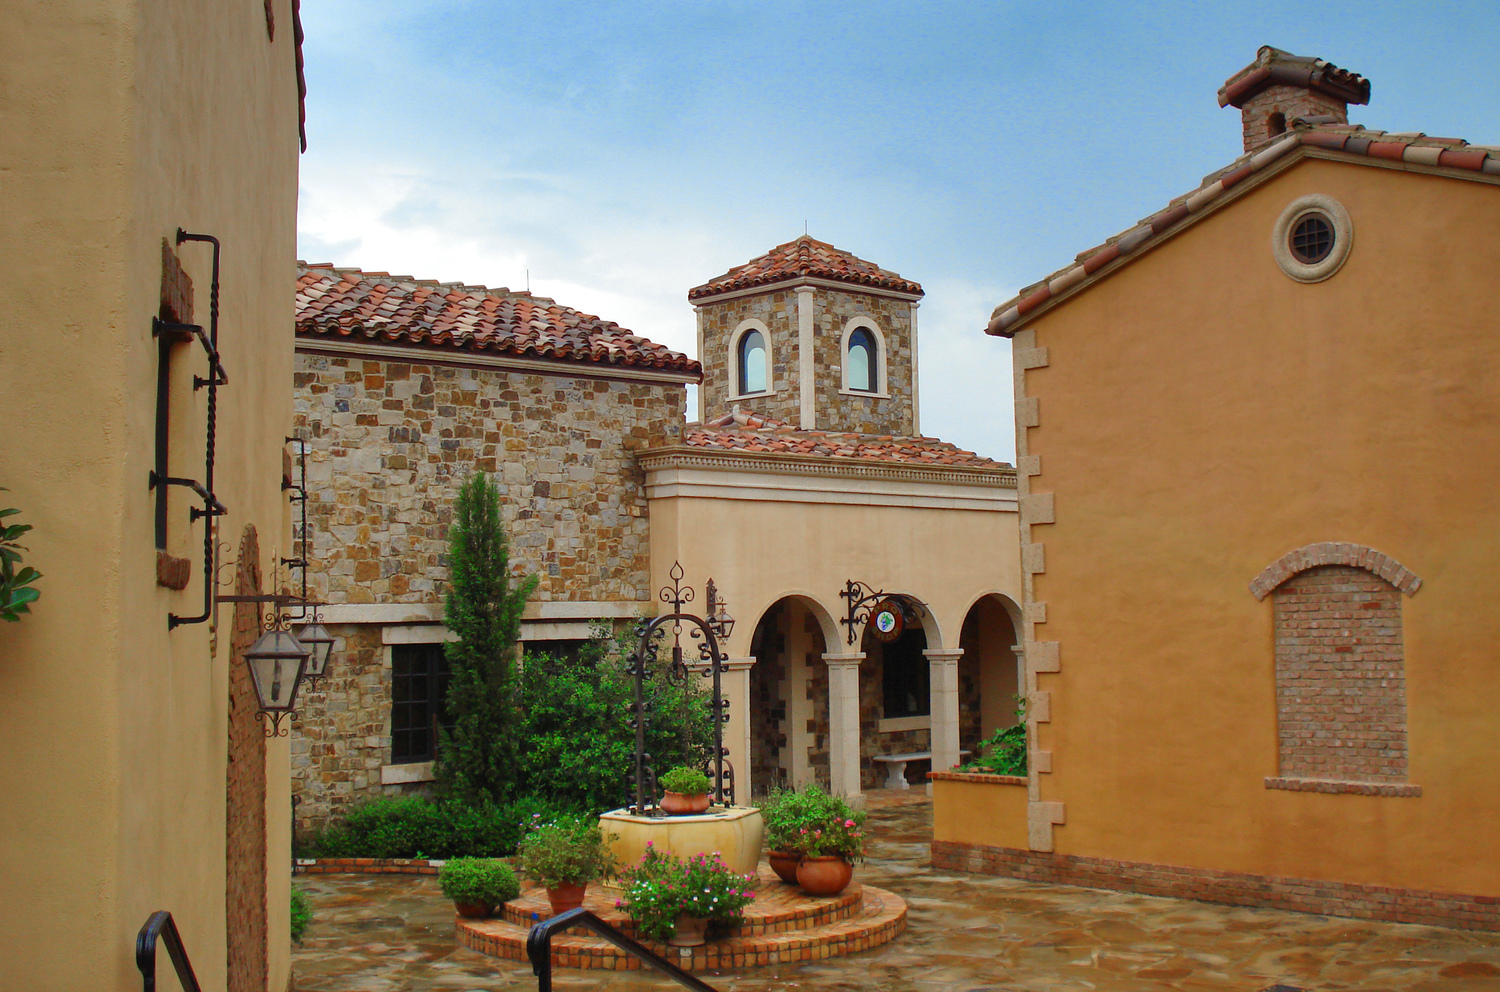 Things to Consider When Buying a House With a Clay Tile Roof